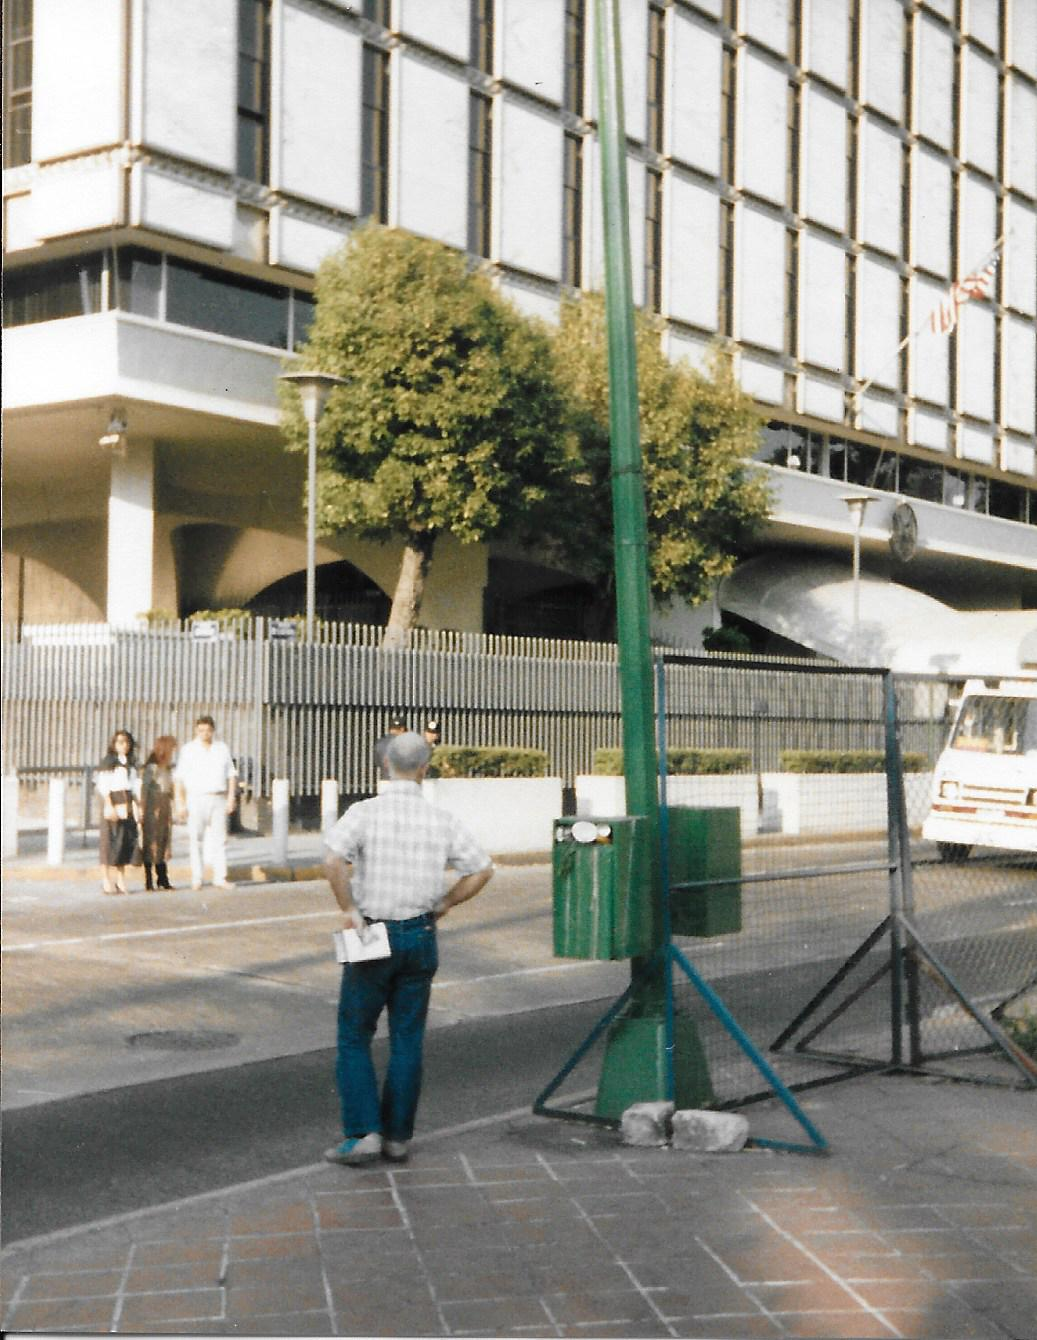 here is david across from the american embassy there were guards there with machine guns as well as machine gun armed police here and there